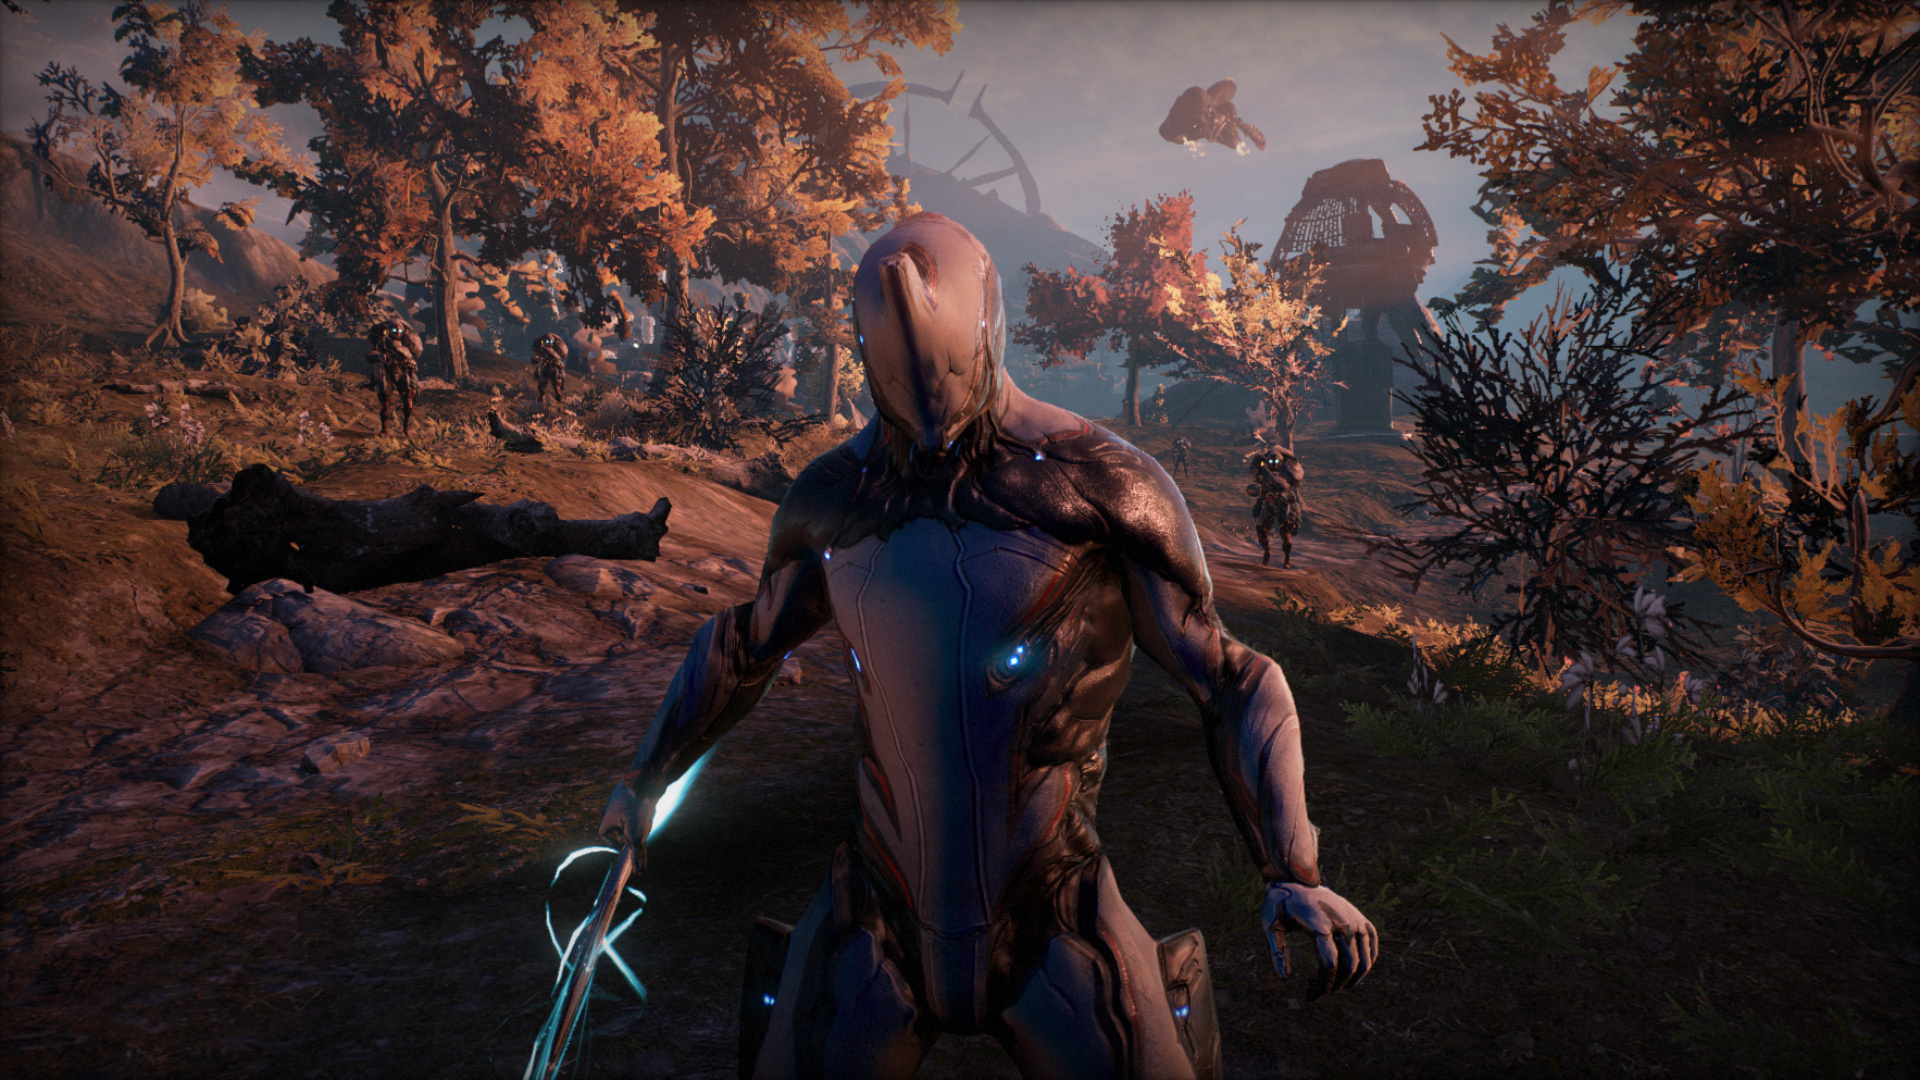 en_US_Warframe_PS5Reveal_PS4Comparison_1920x1080_L.jpg